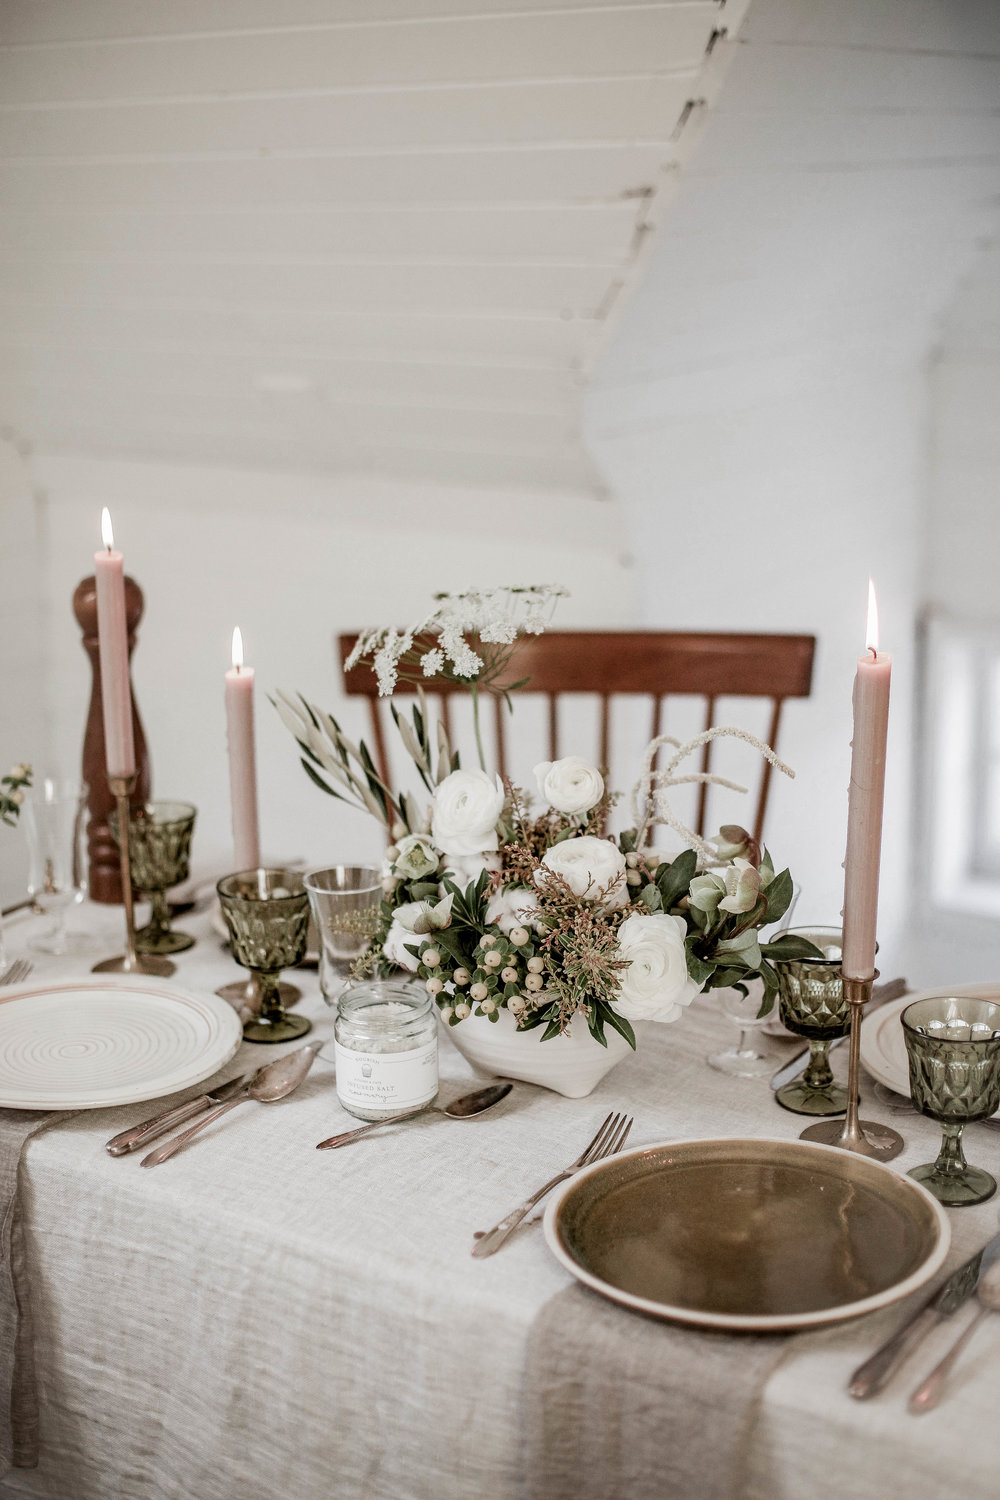 5 holiday table setting tips + a collab with Rook & Rose & Nourish ...